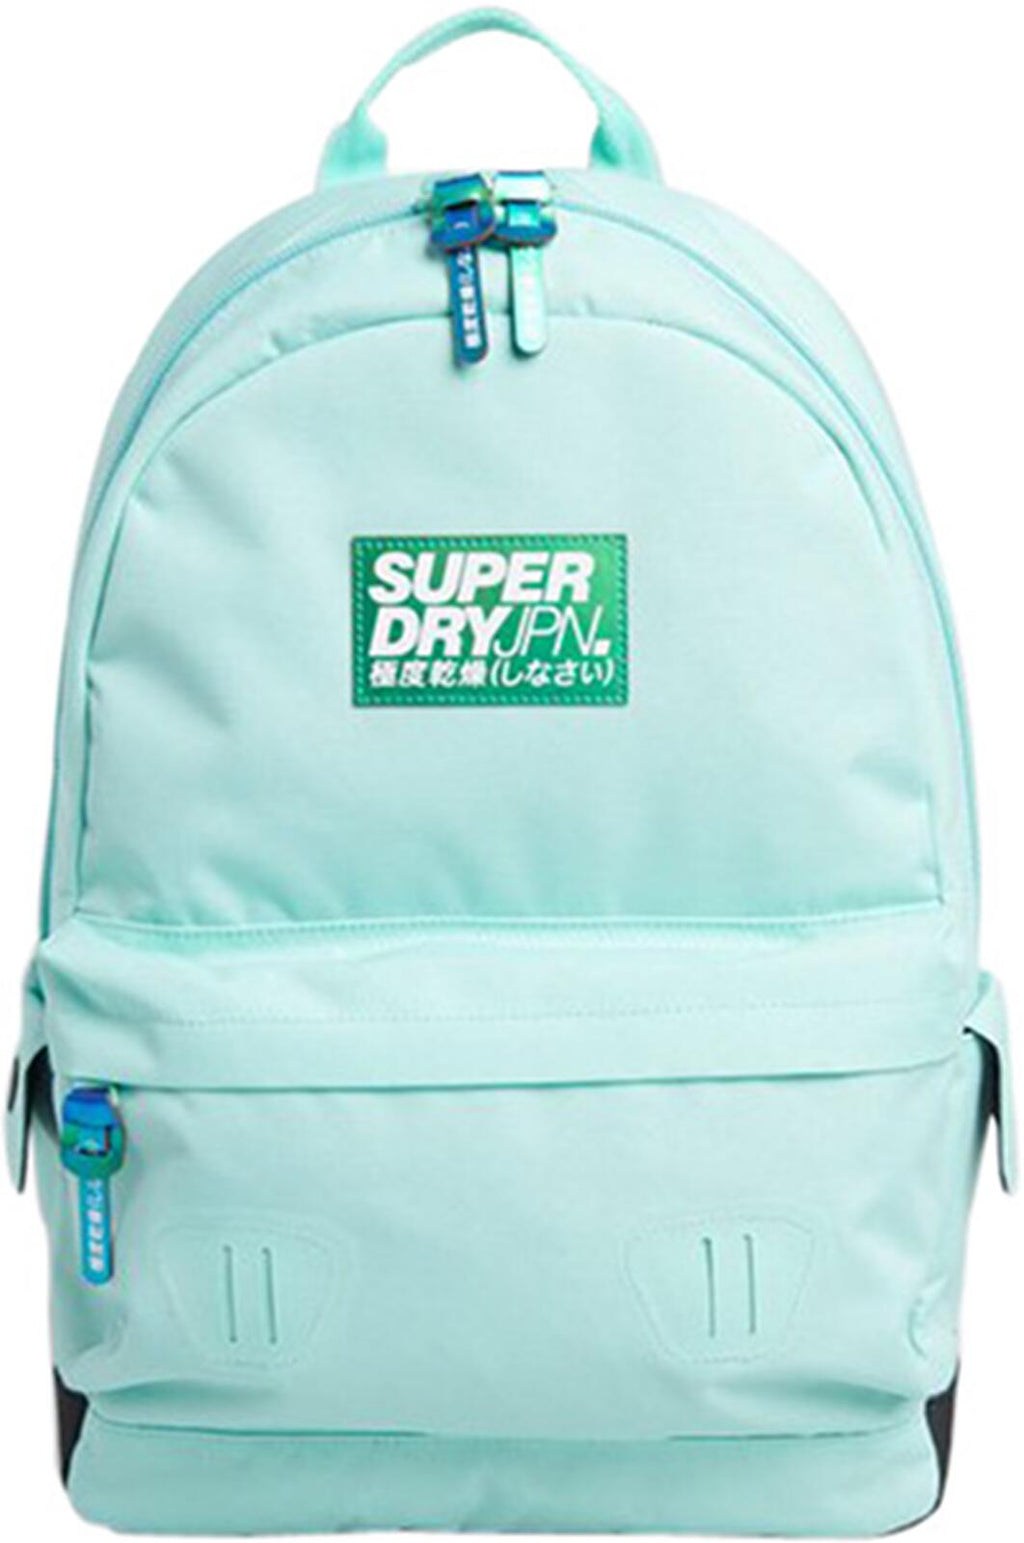 Superdry Pearl Montana Backpack Bag	Powder Turquoise